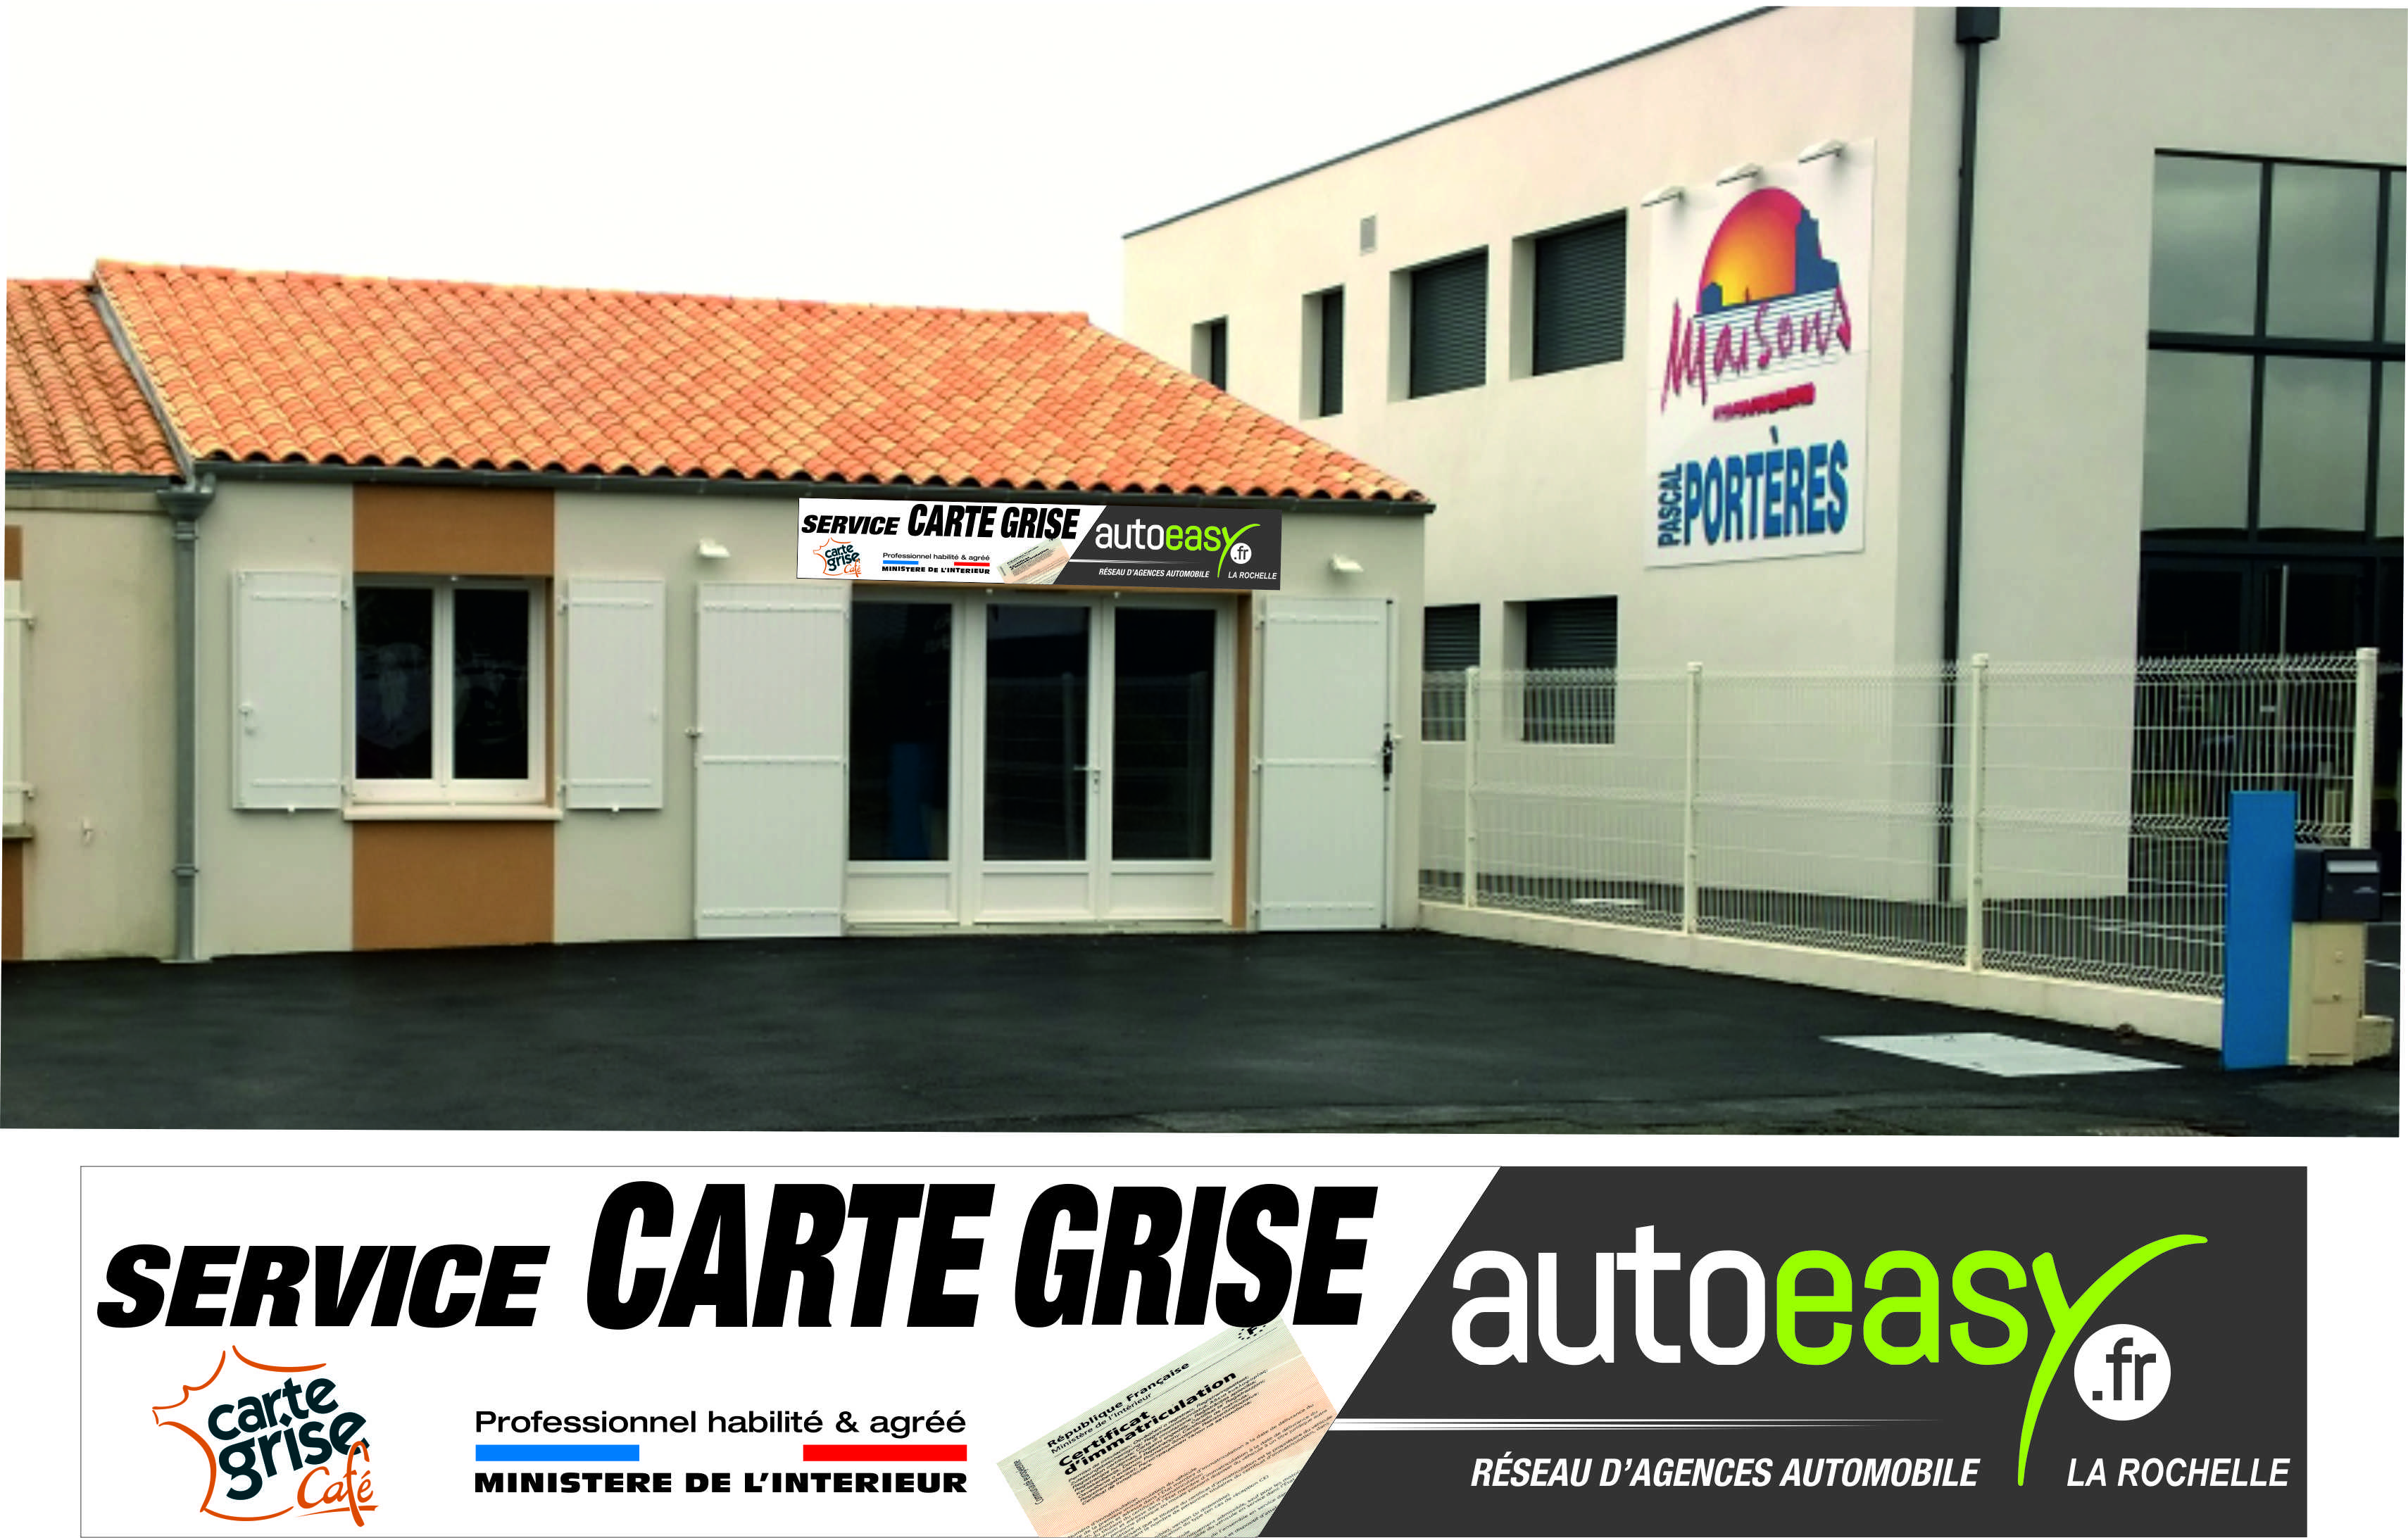 carte grise garage service carte grise la rochelle aytre professionnel agr carte grise. Black Bedroom Furniture Sets. Home Design Ideas